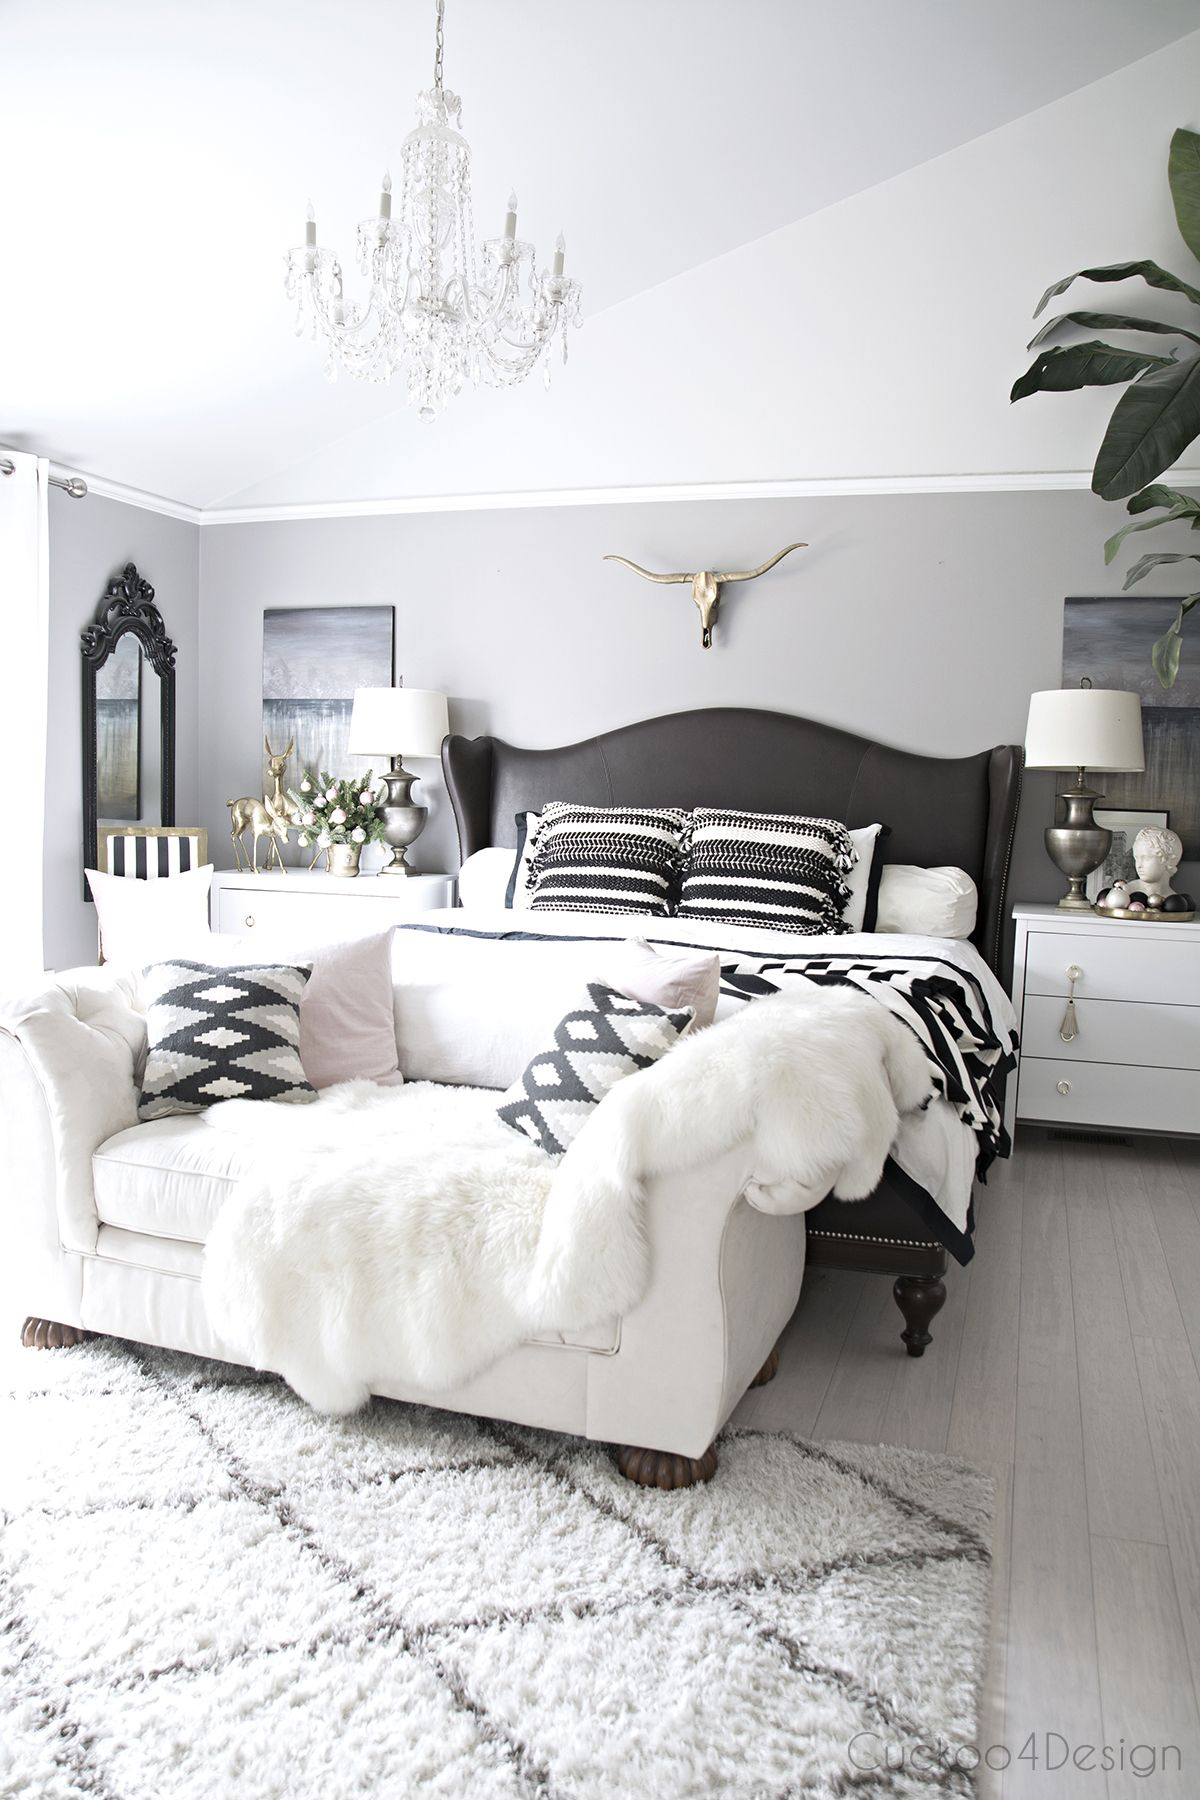 Better Homes and Gardens Christmas Ideas Home Tour | Serene bedroom ...